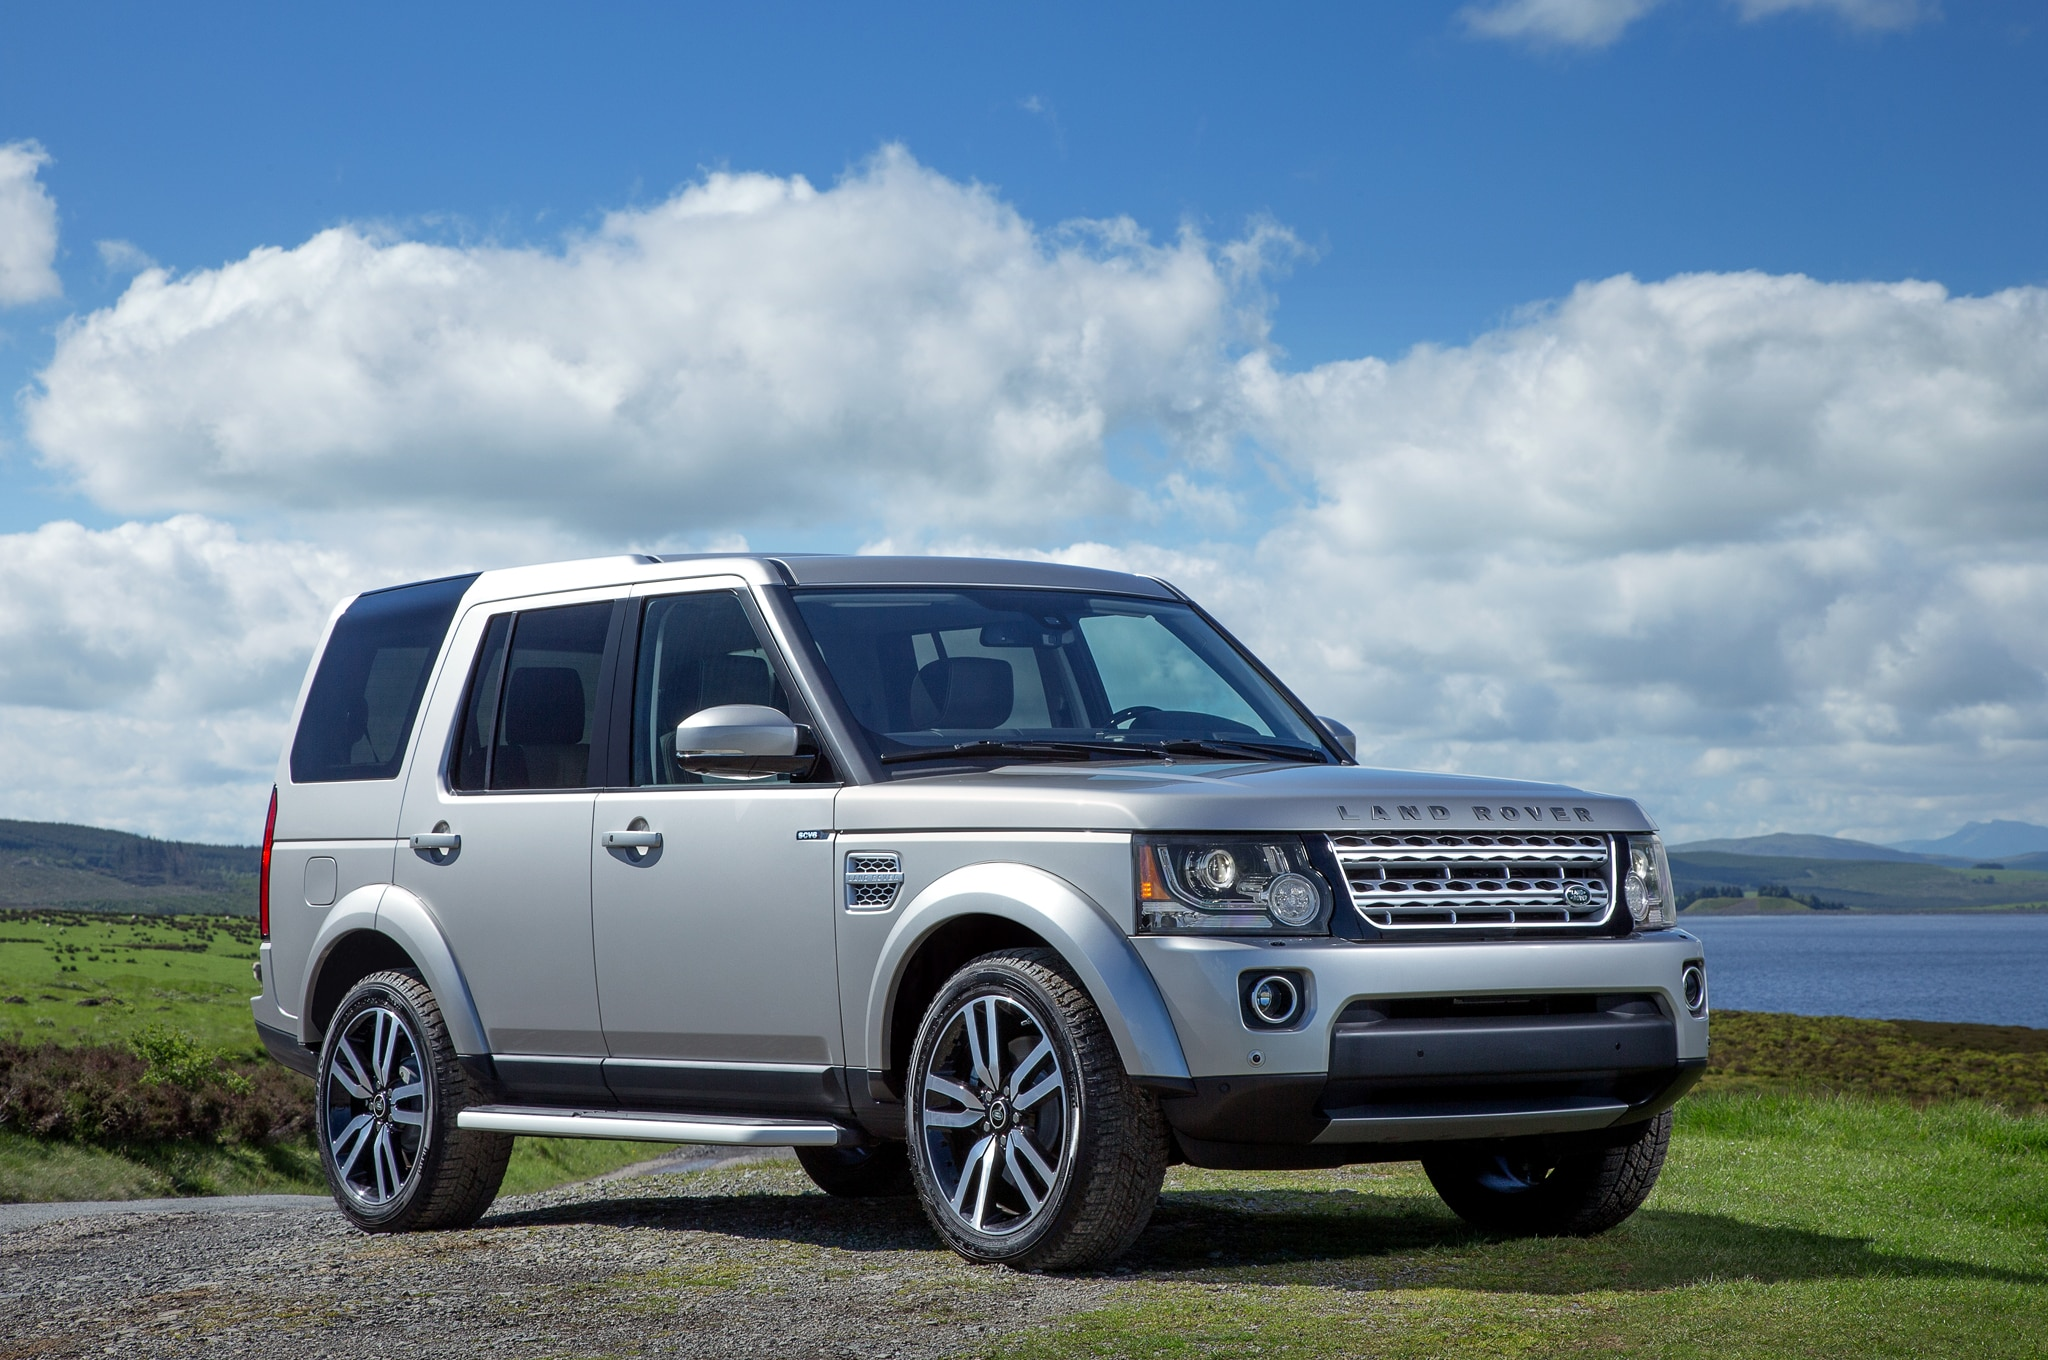 Land Rover Dealership Michigan >> When the Luxury Car Buyer Isn't Actually the Buyer